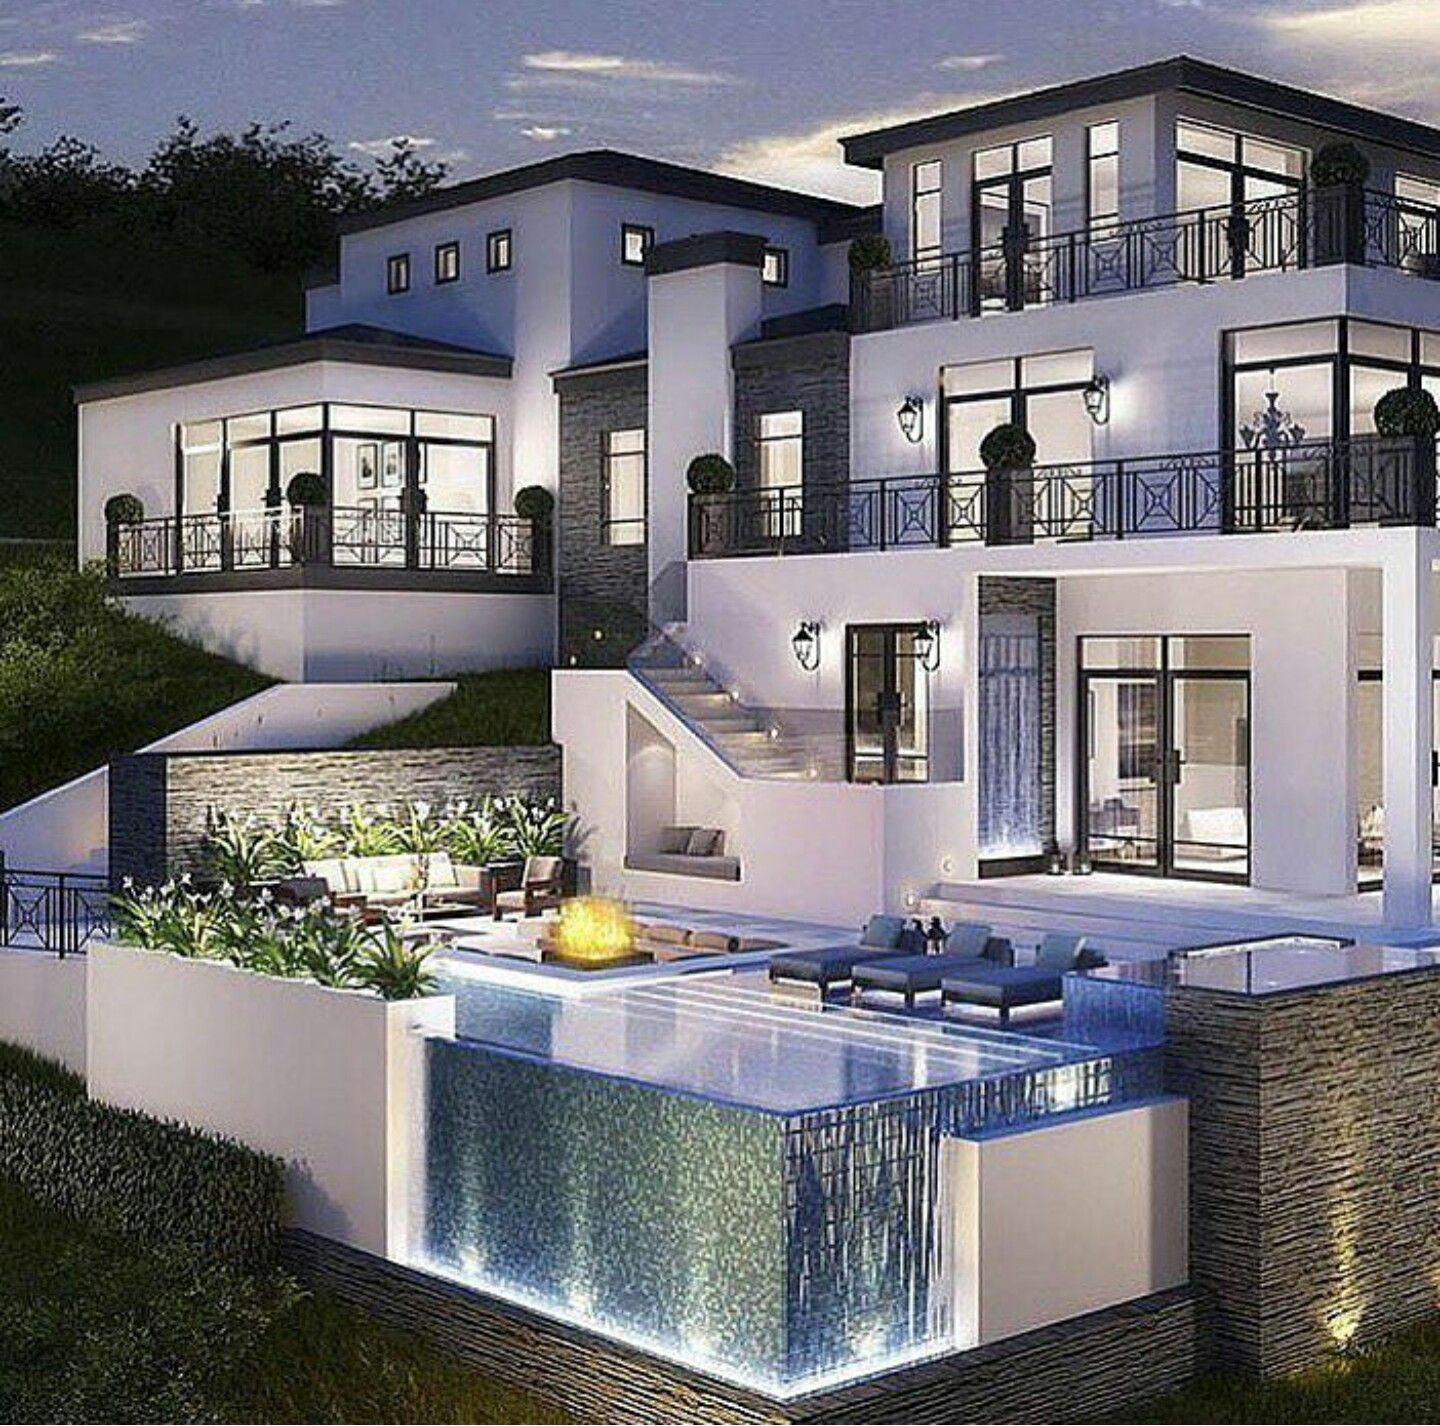 Luxury House In Los Angeles California: Amazing Los Angeles Hollywood Hills Mansion With Infinity